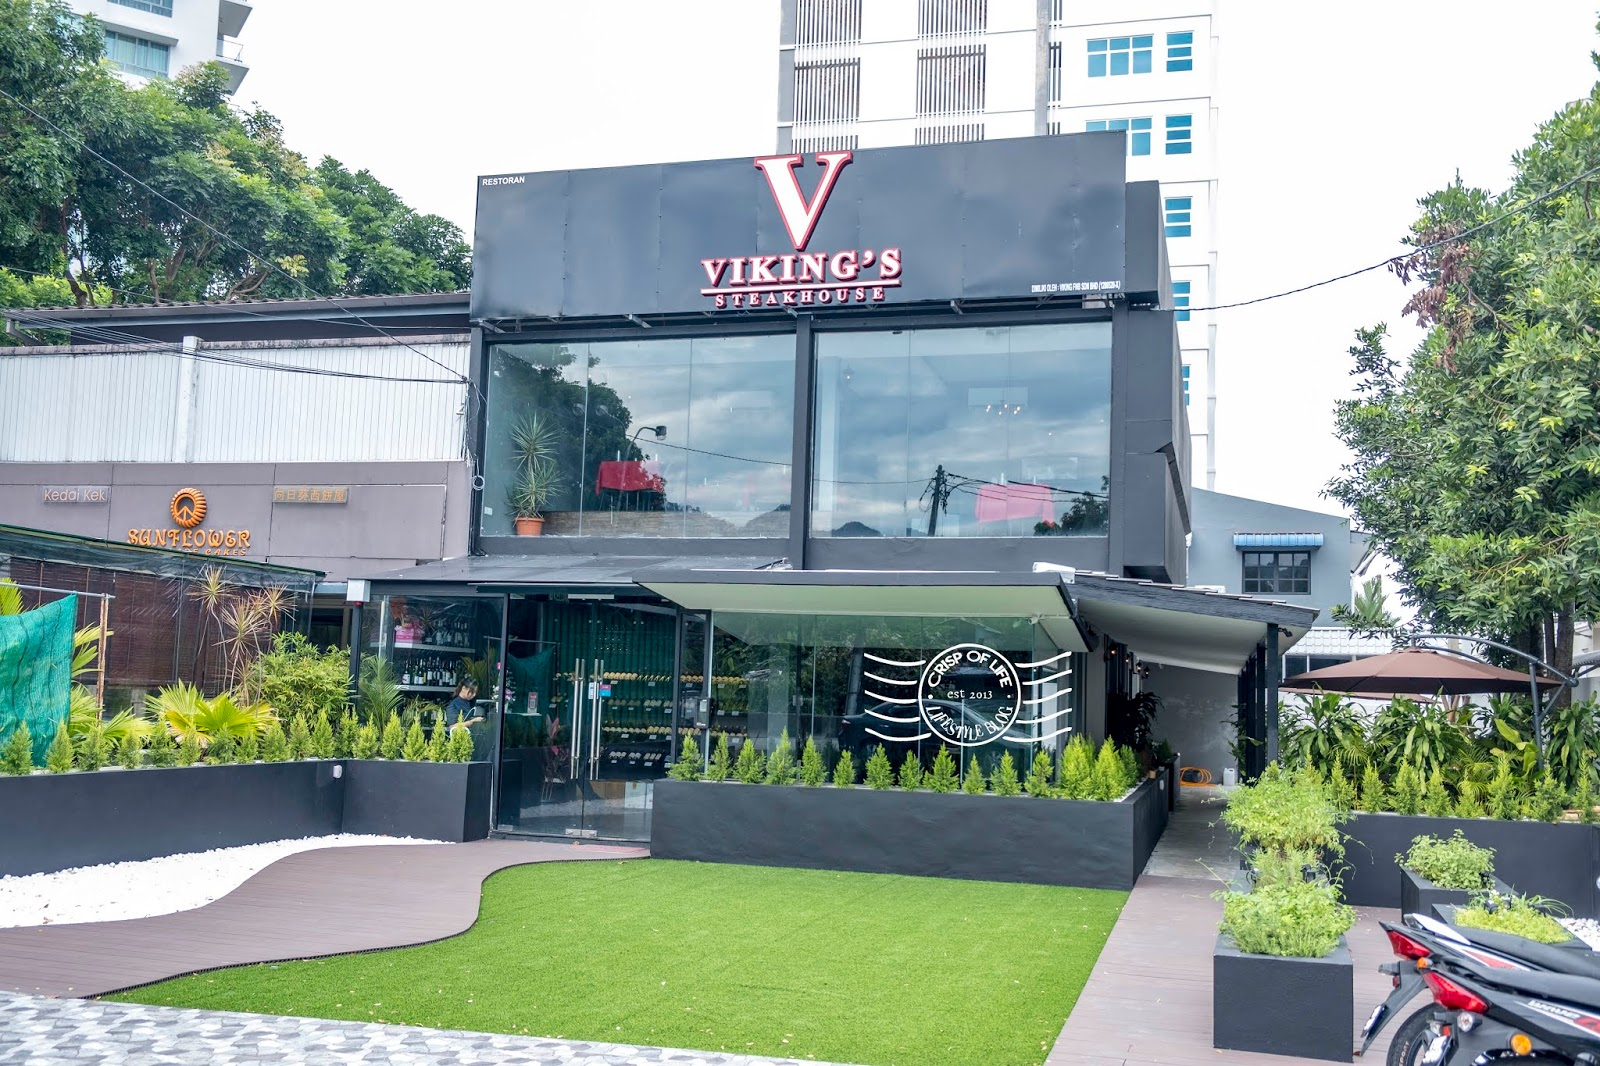 Premium Steakhouse with Affordable Price @ Viking Steakhouse, Tanjung Bungah, Penang